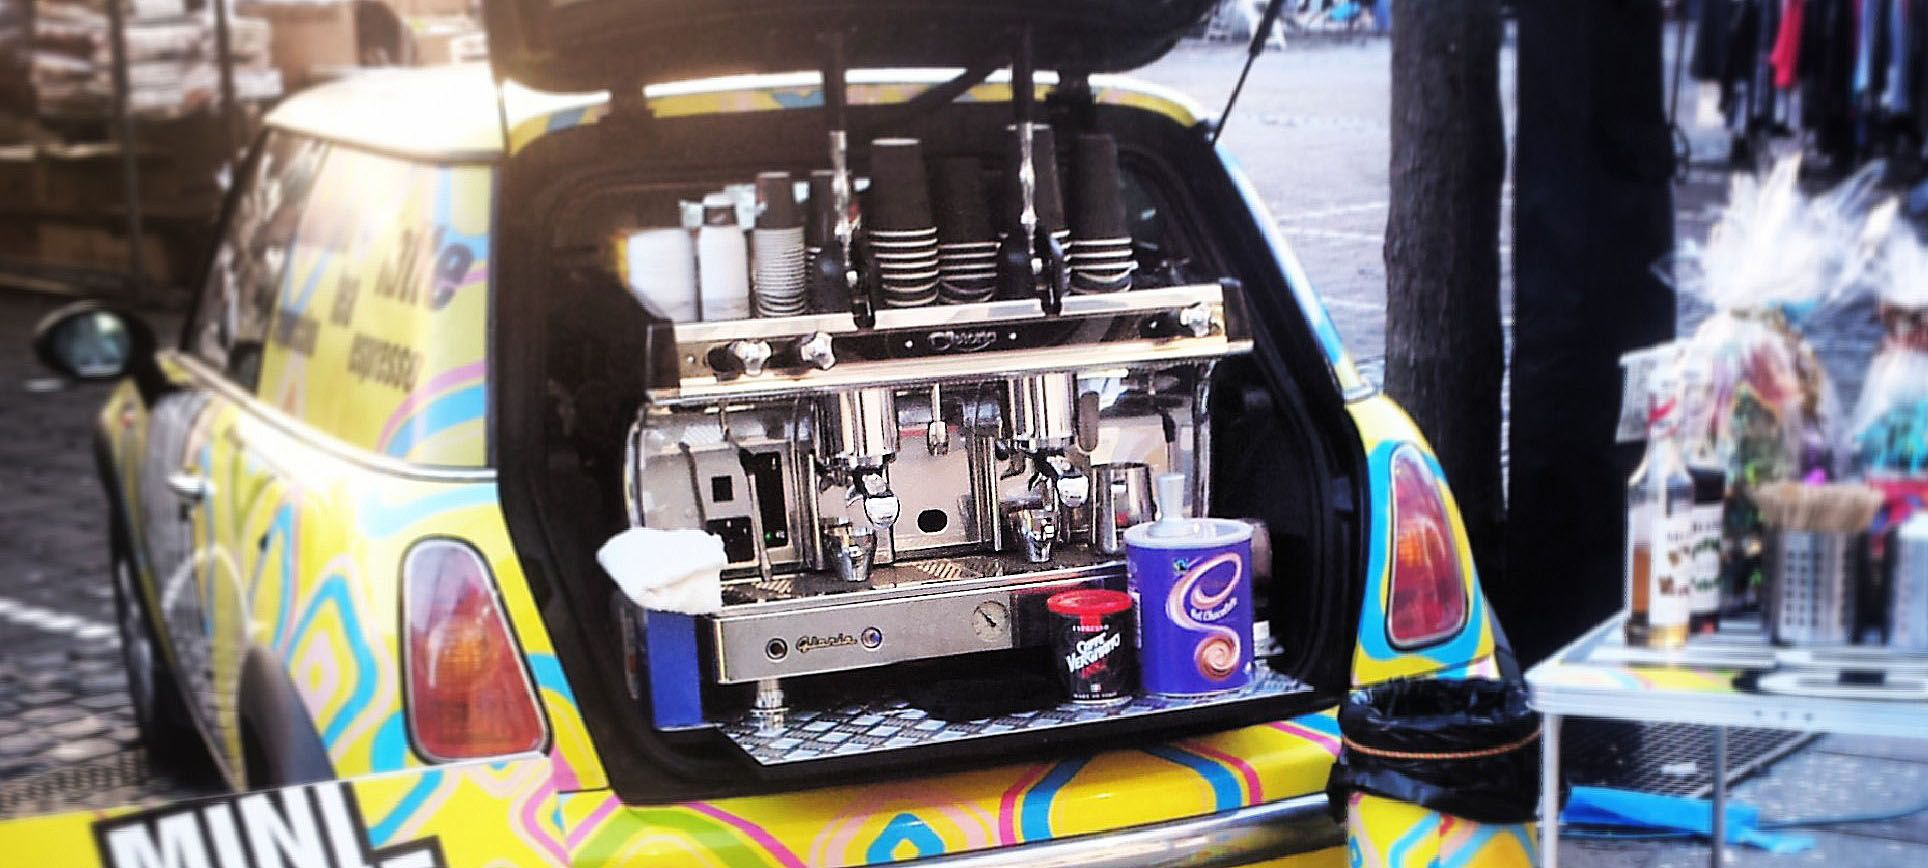 coffee machine mini cooper Google Search Espresso